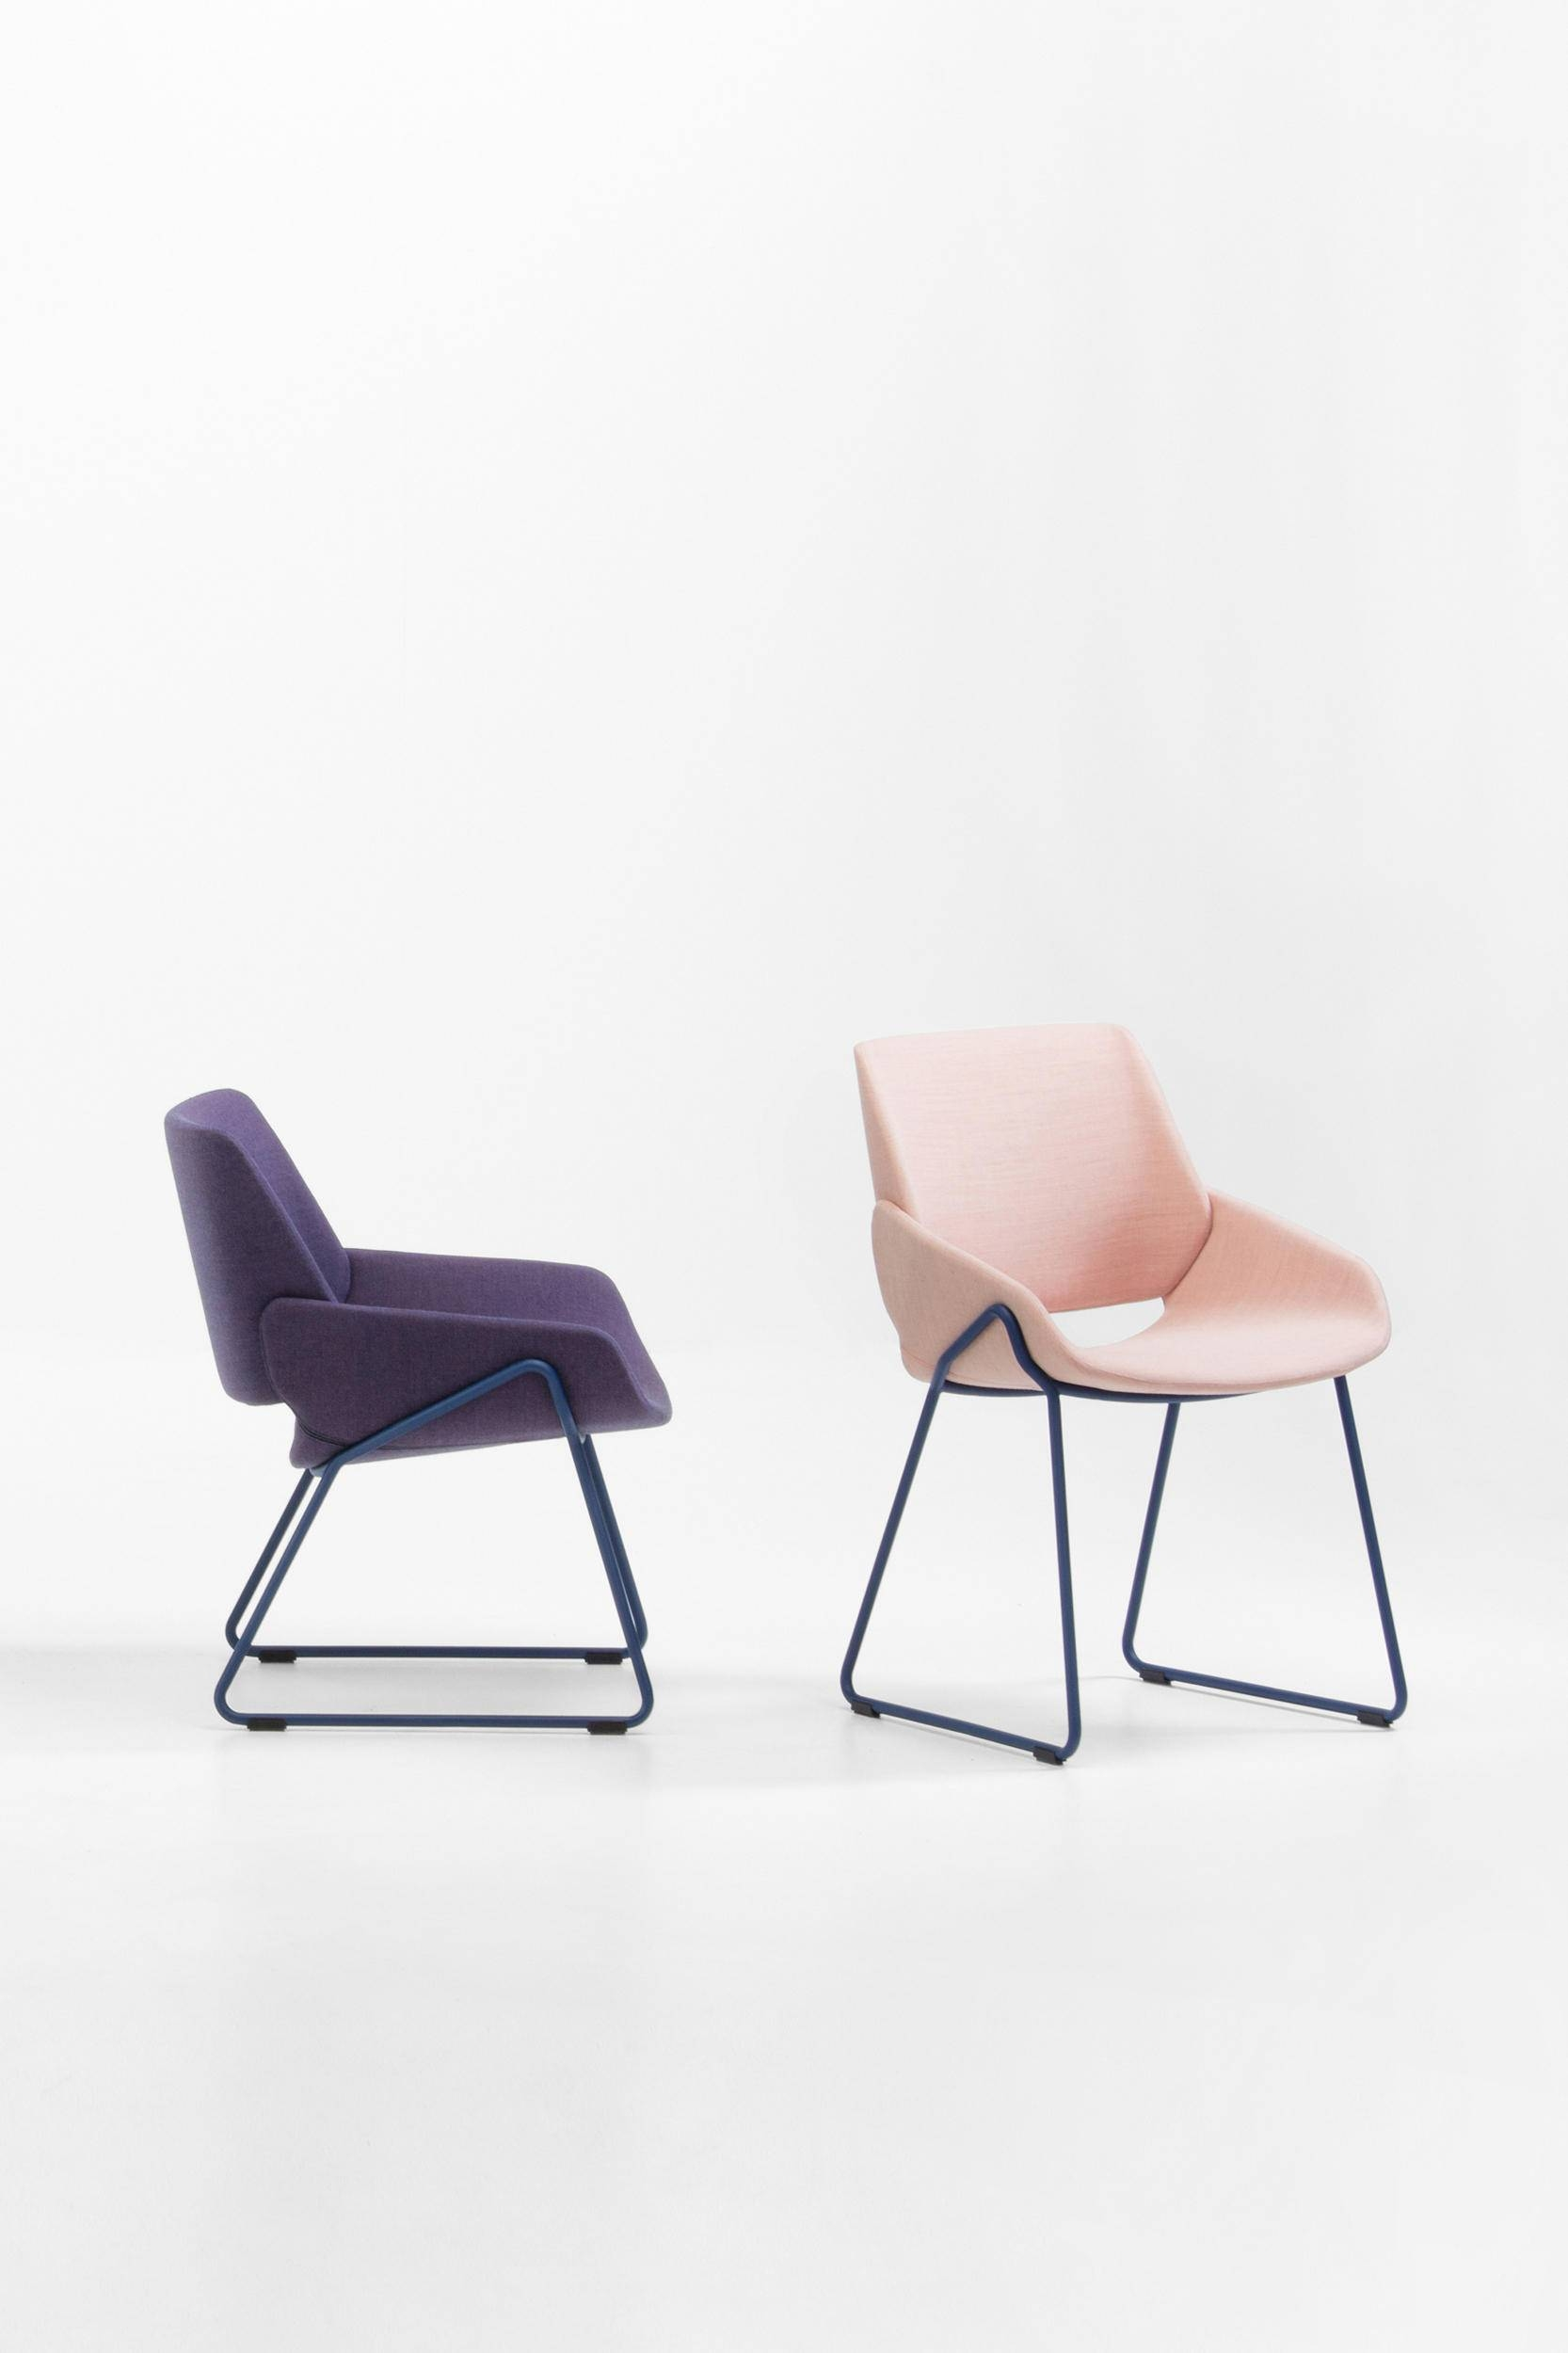 Monk Chair – Visitors Chairs / Side Chairs From Prostoria | Architonic With Monk Chairs (View 4 of 30)